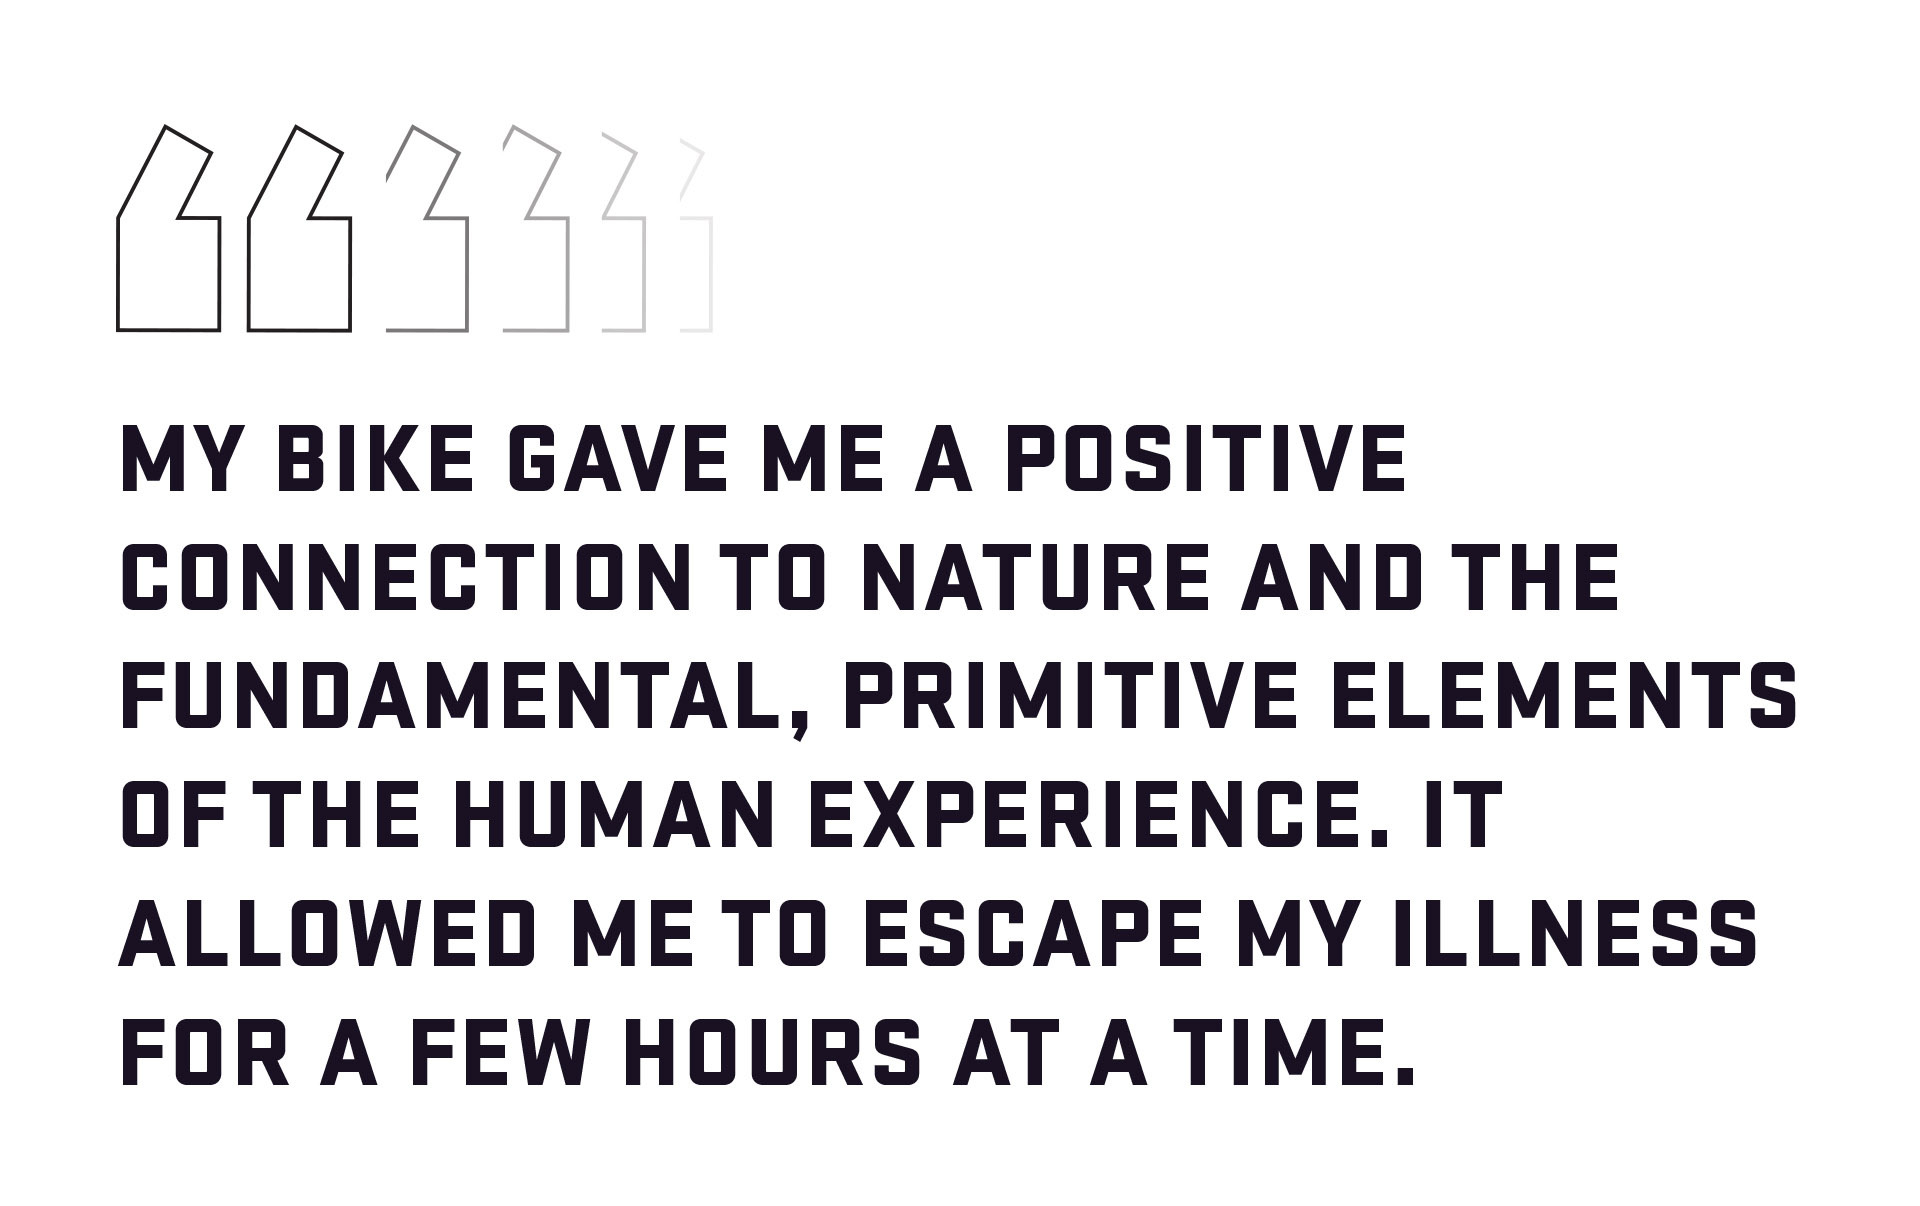 Block quote: My bike gave me a positive connection to nature and the fundamental, primitive elements of the human experience. It allowed me to escape my illness for a few hours at a time.